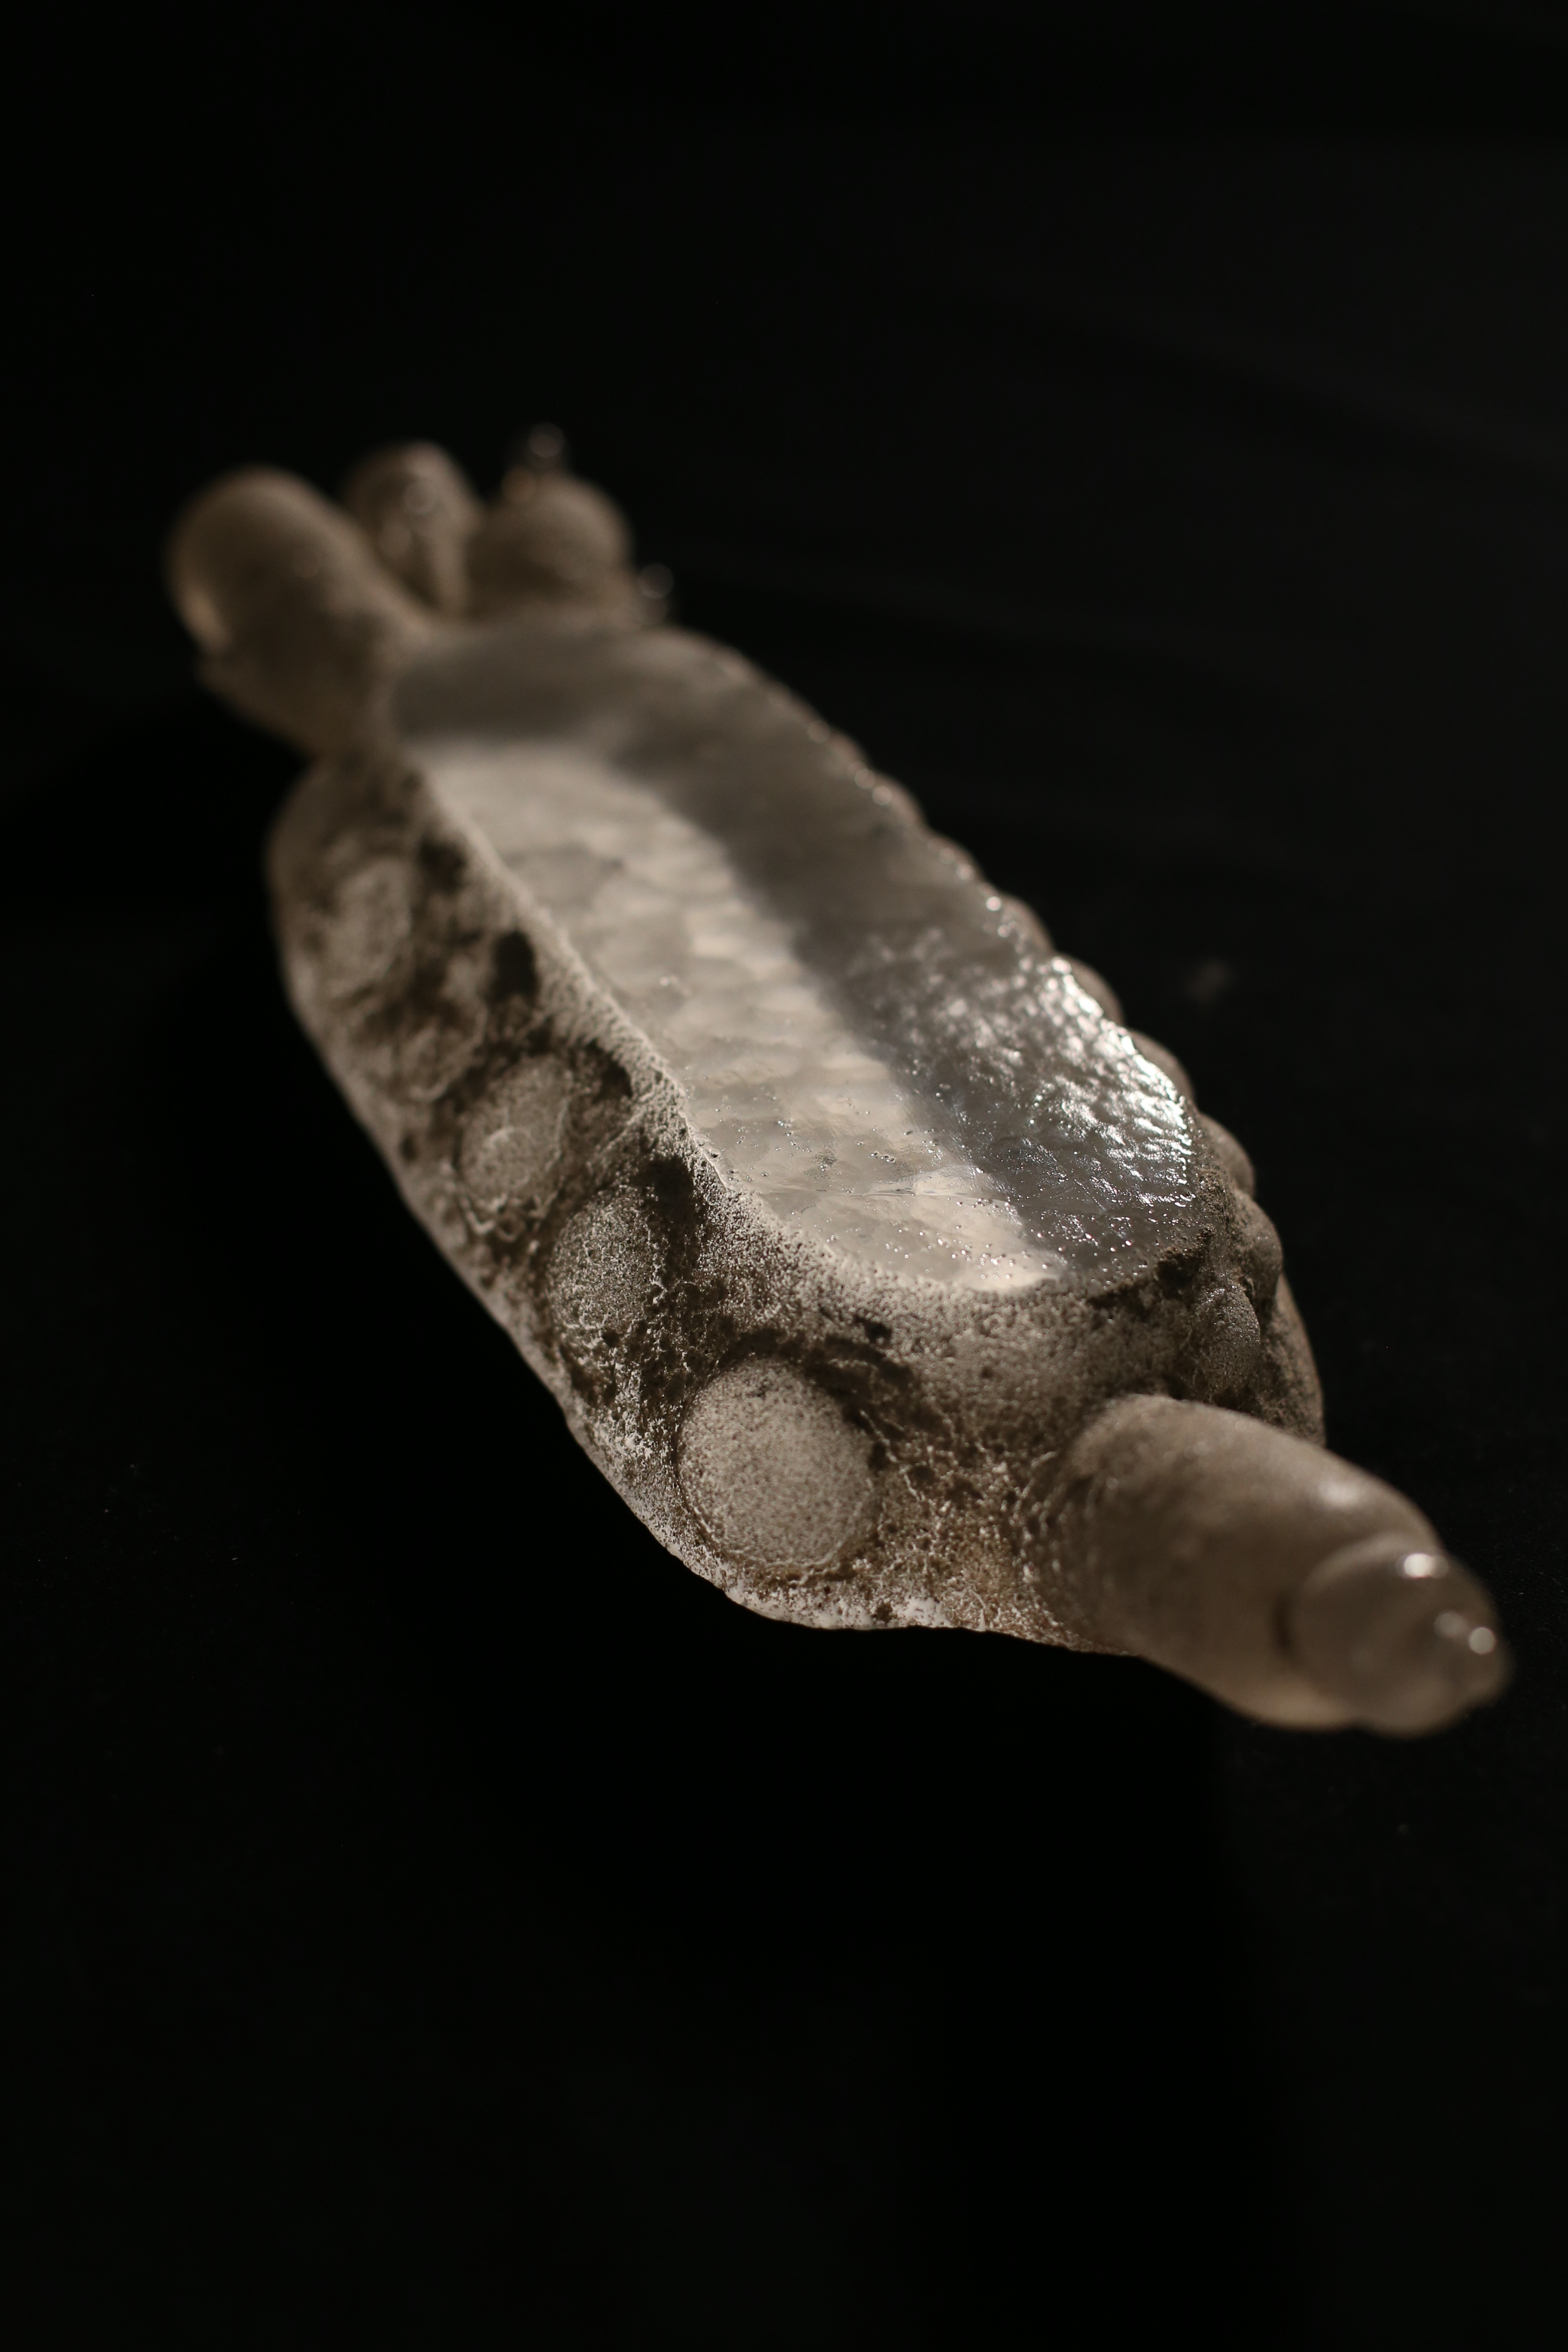 The Condensation 2014 Glass cast into a sand and graphite mold 40 x 12.7 x 7.5 cm The inspiration is surface tension and ripples. Shadows created under a calm body of water are emulated through the window.